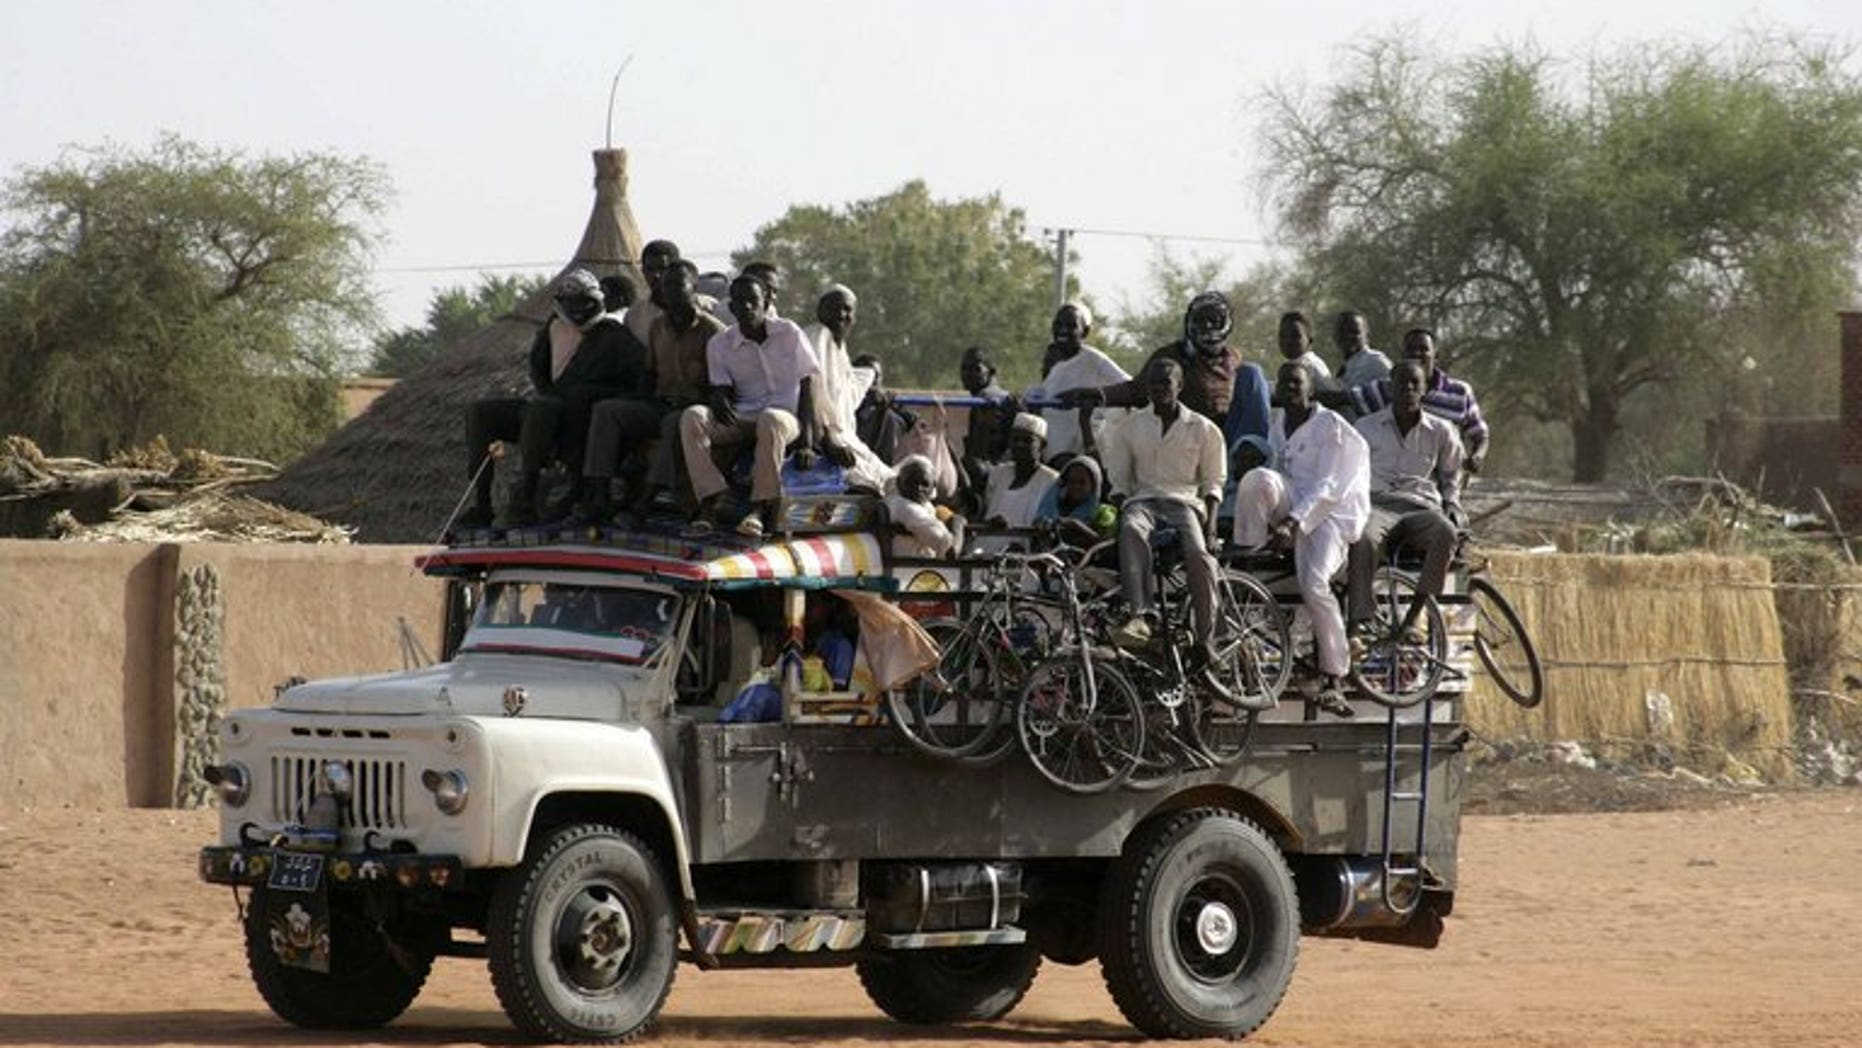 Displaced Sudanese people from the district of Abu Kershola, arrive on April 29, 2013 in the North Kordofan town of El Rahad. Sudanese rebels clashed with government forces on Saturday for the second time this week in the strategic South-North Kordofan region, the insurgents said.